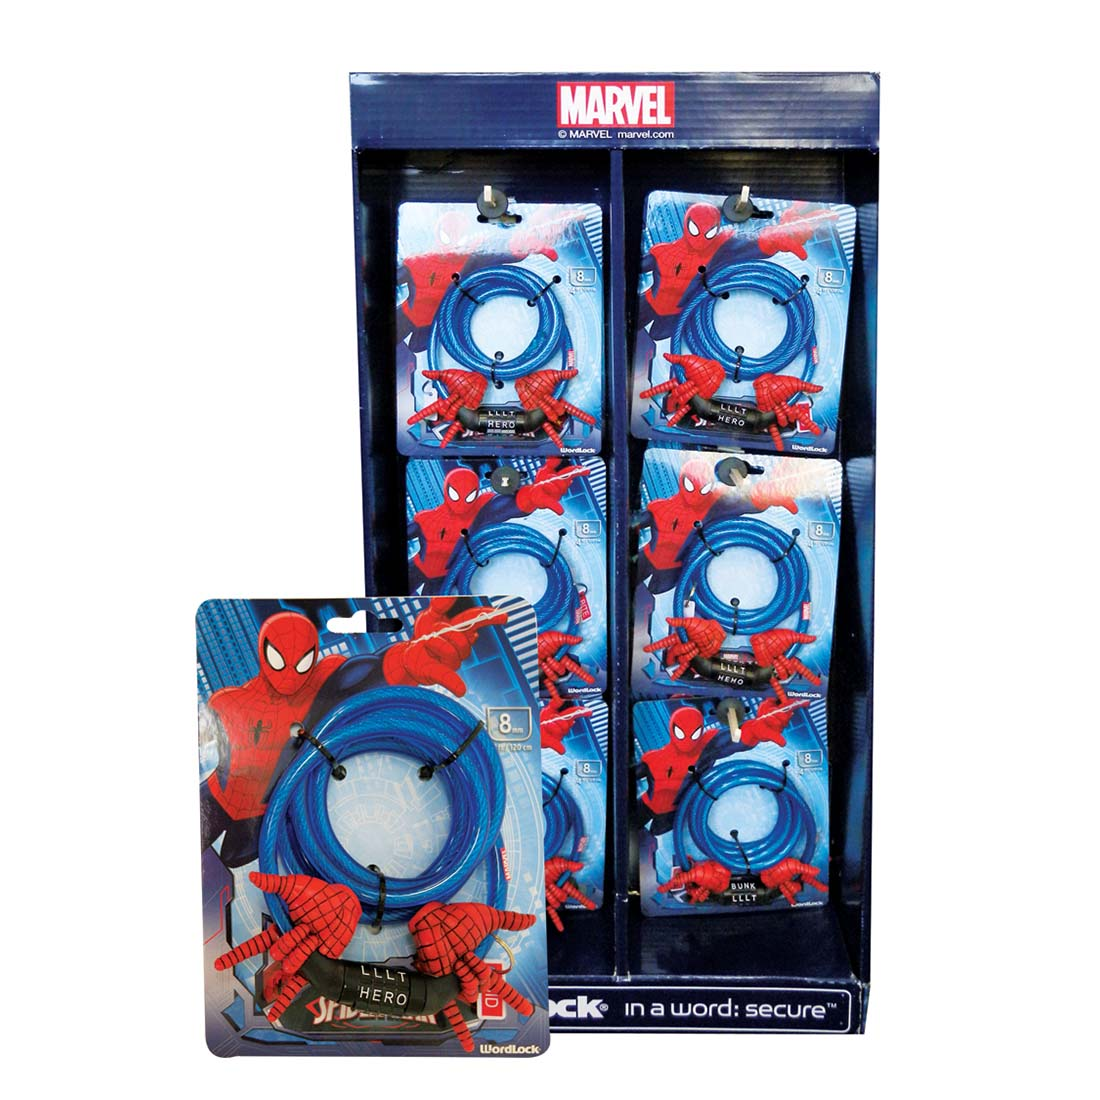 View MARVEL SPIDERMAN BICYCLE WOOD COMBITION LOCK 4 FT 8 MM IN DISPLAY